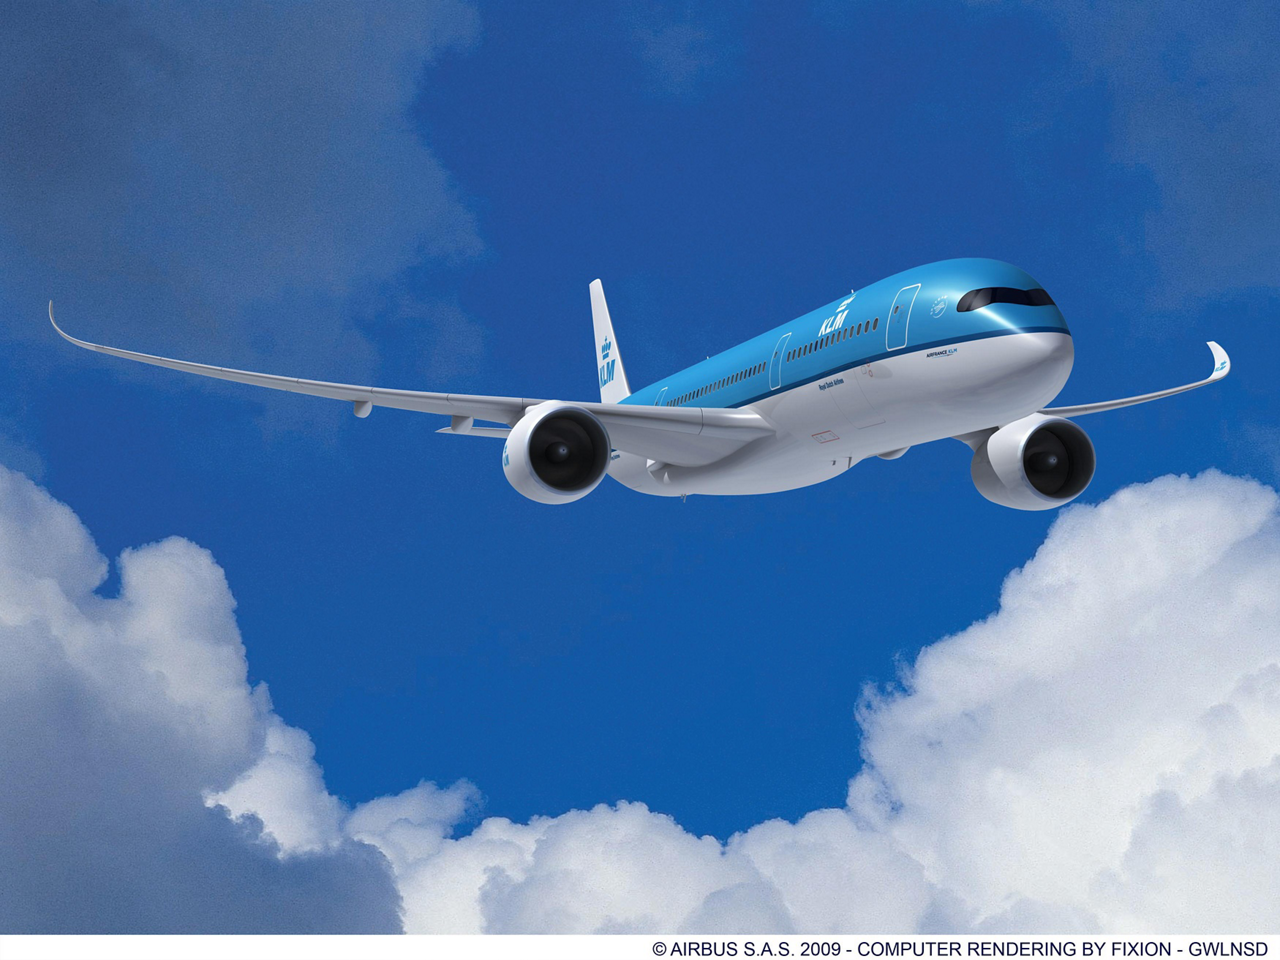 The Air France-KLM Group announced its intention to acquire up to 60 A350 XWB jetliners, which will be a pillar in the group's long-haul fleet modernization strategy (16 September 2011).